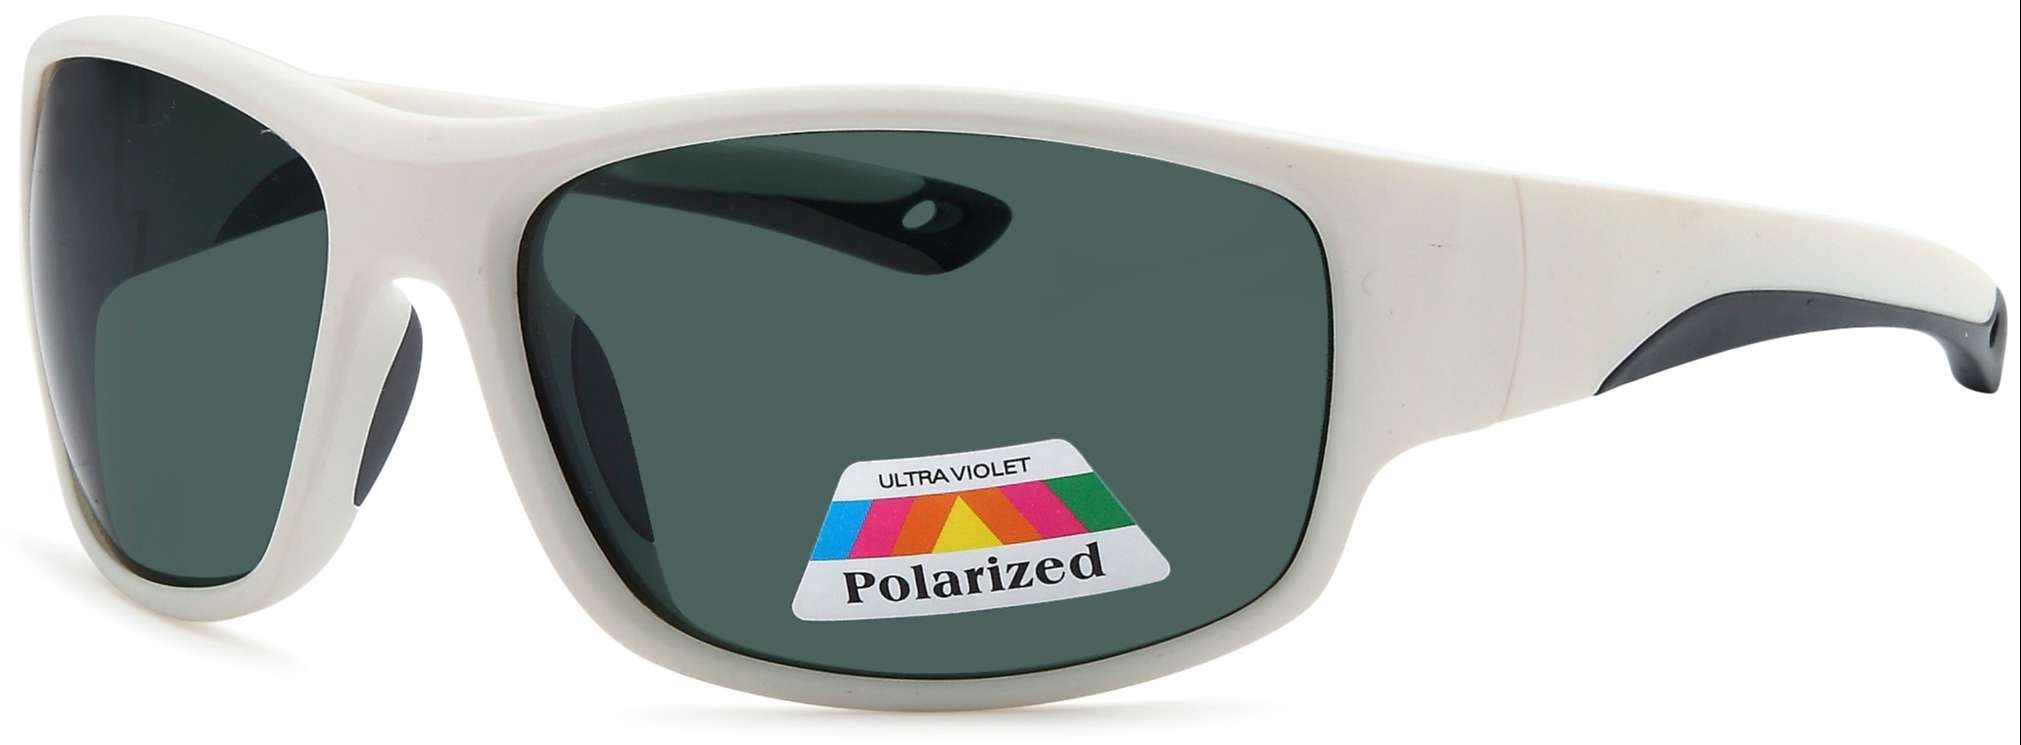 white frame polarized sunglasses